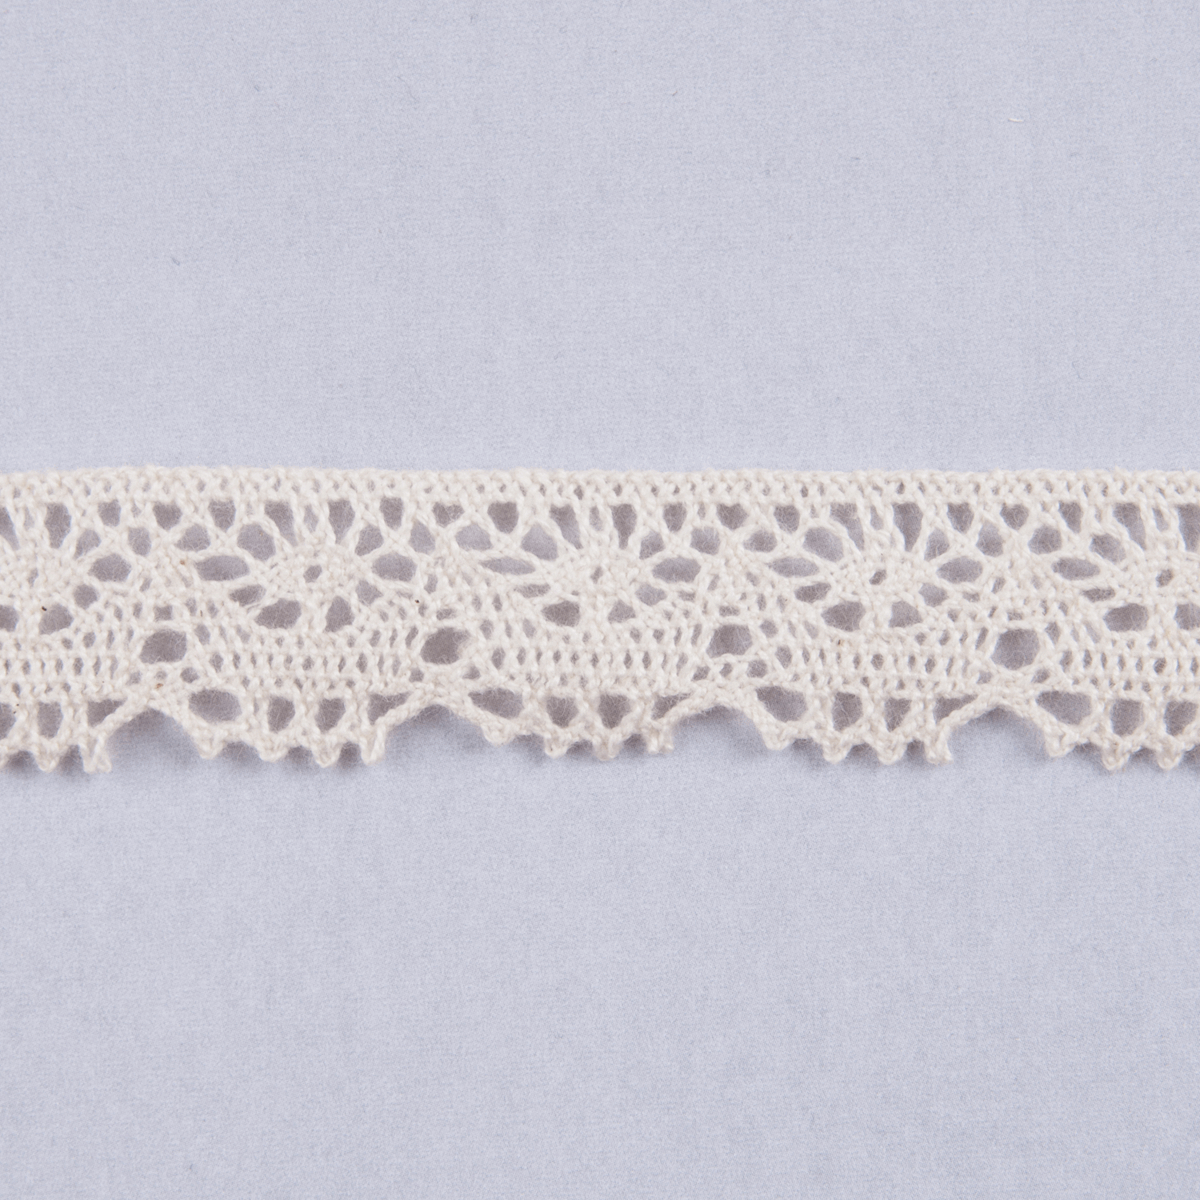 Cream Lace Cotton Trim 20mm